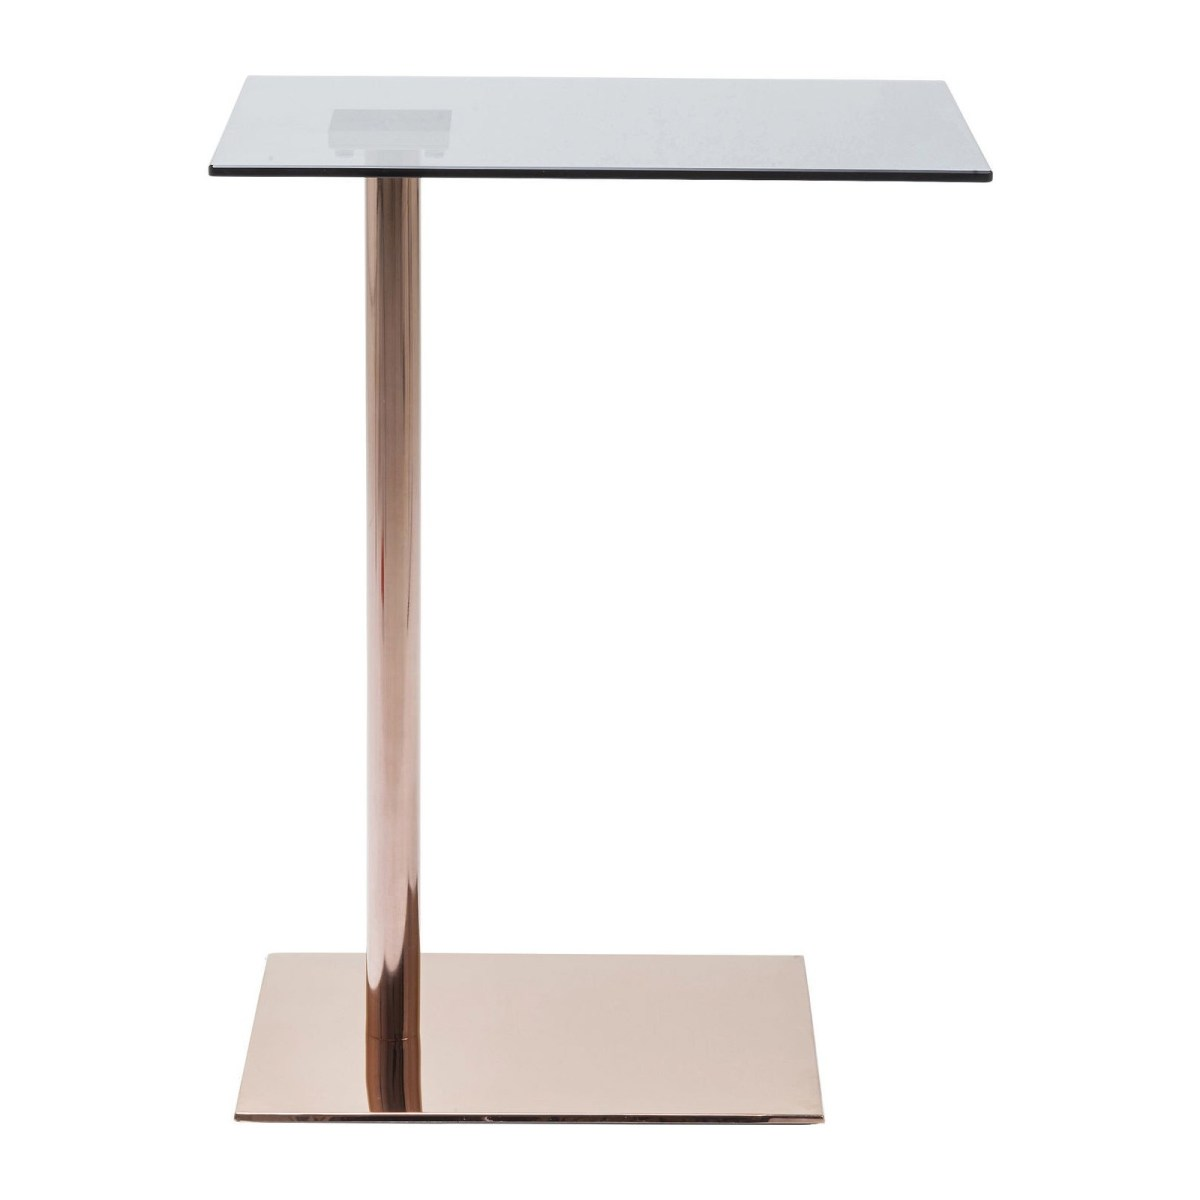 Soldes Kare Design Meuble > Table D Appoint & De Chevet Table d appoint West Coast cuivre Kare Design